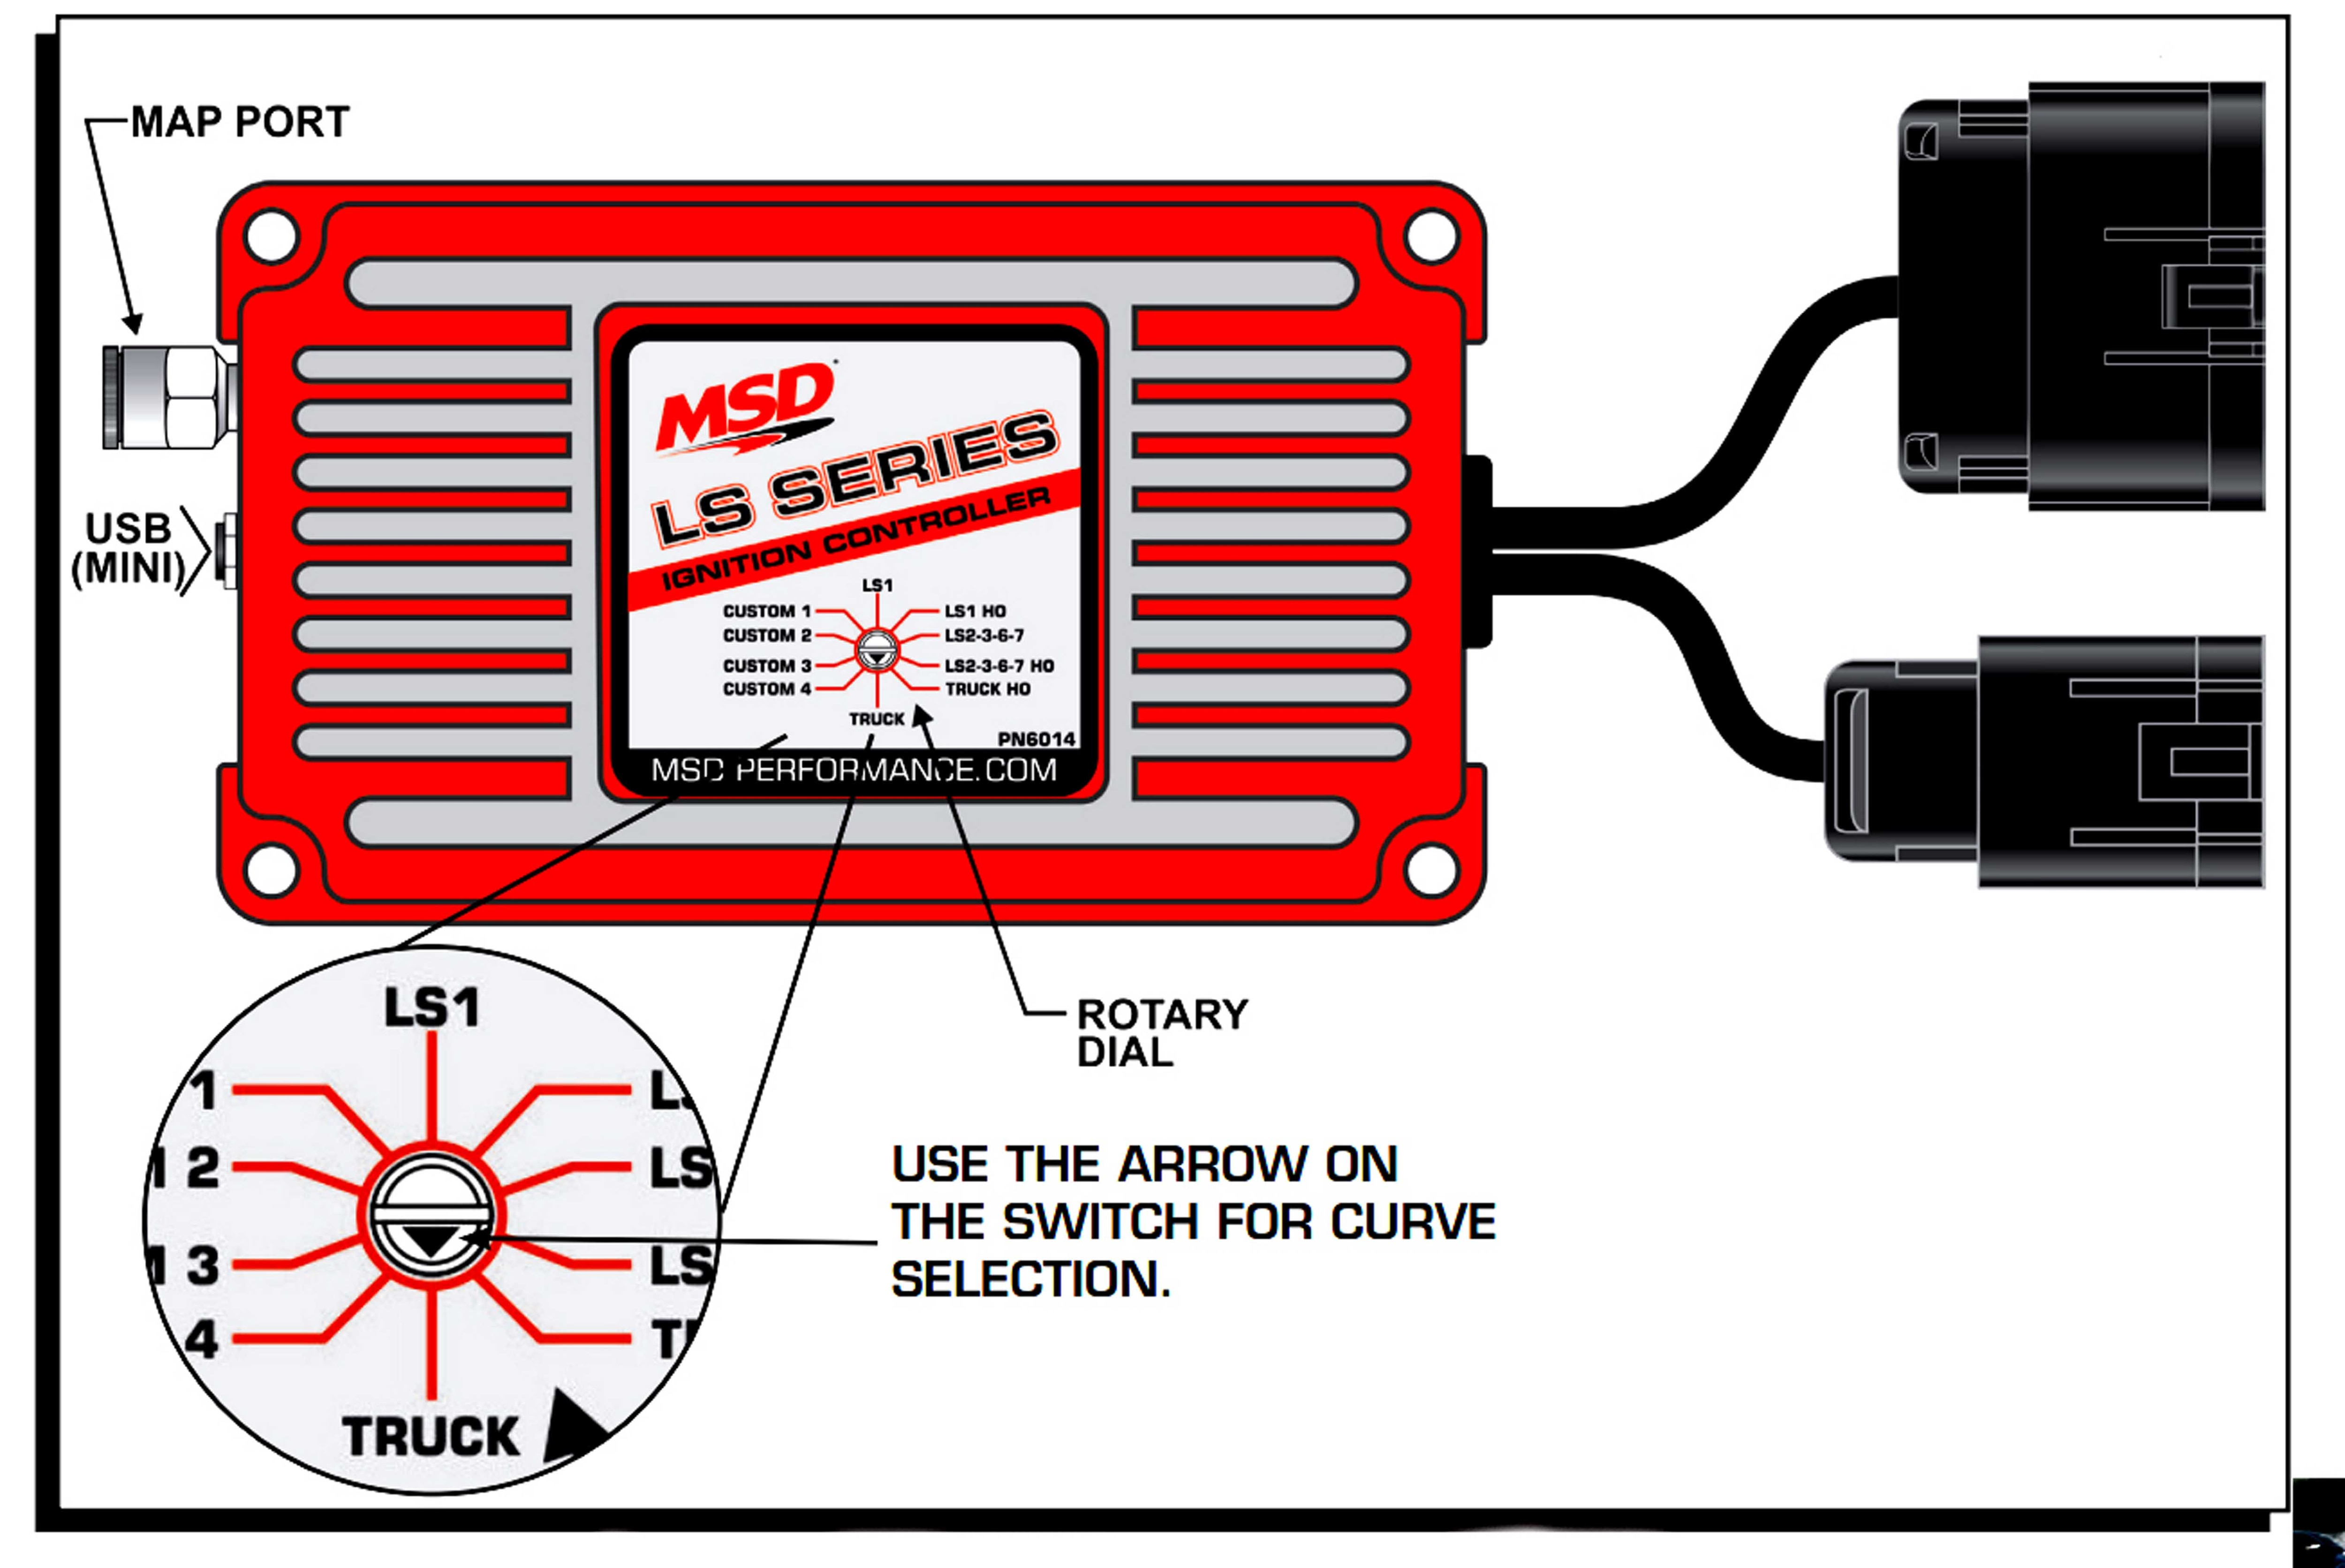 medium resolution of msd ignition controller for ls engines has huge feature set hotthe ho curves generally add 4